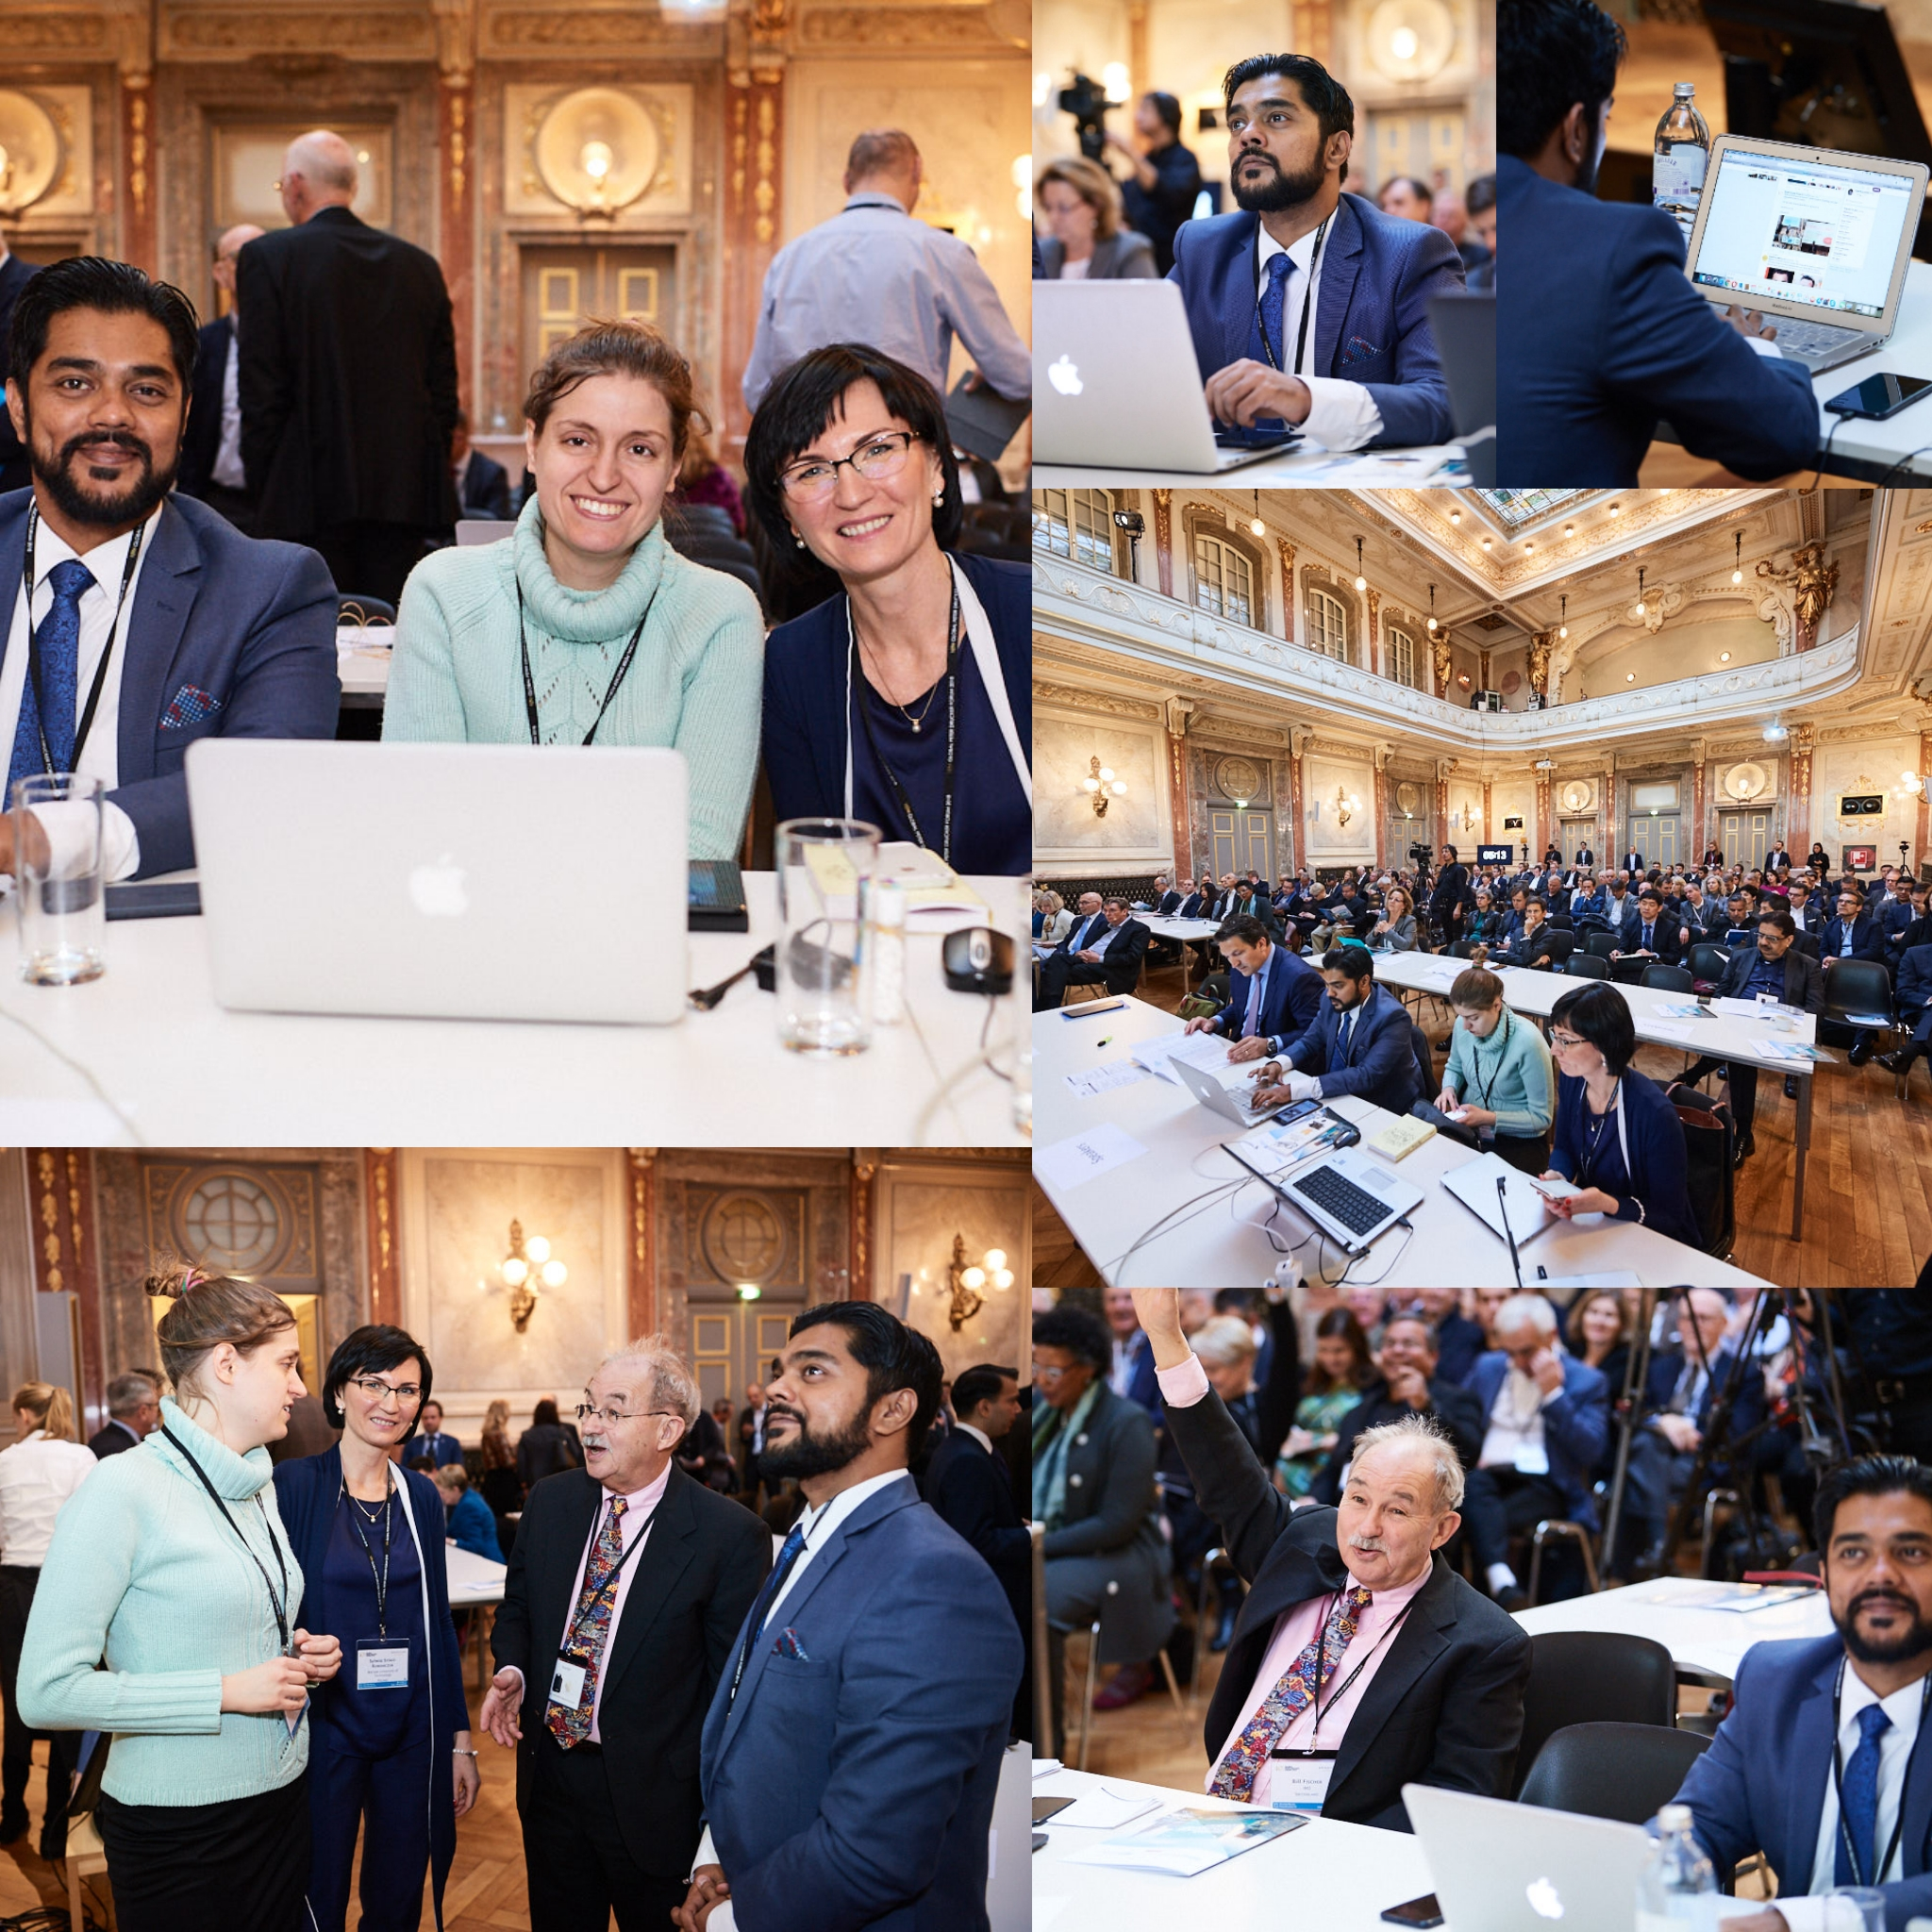 Impressions from the 10th Global Peter Drucker forum in Vienna